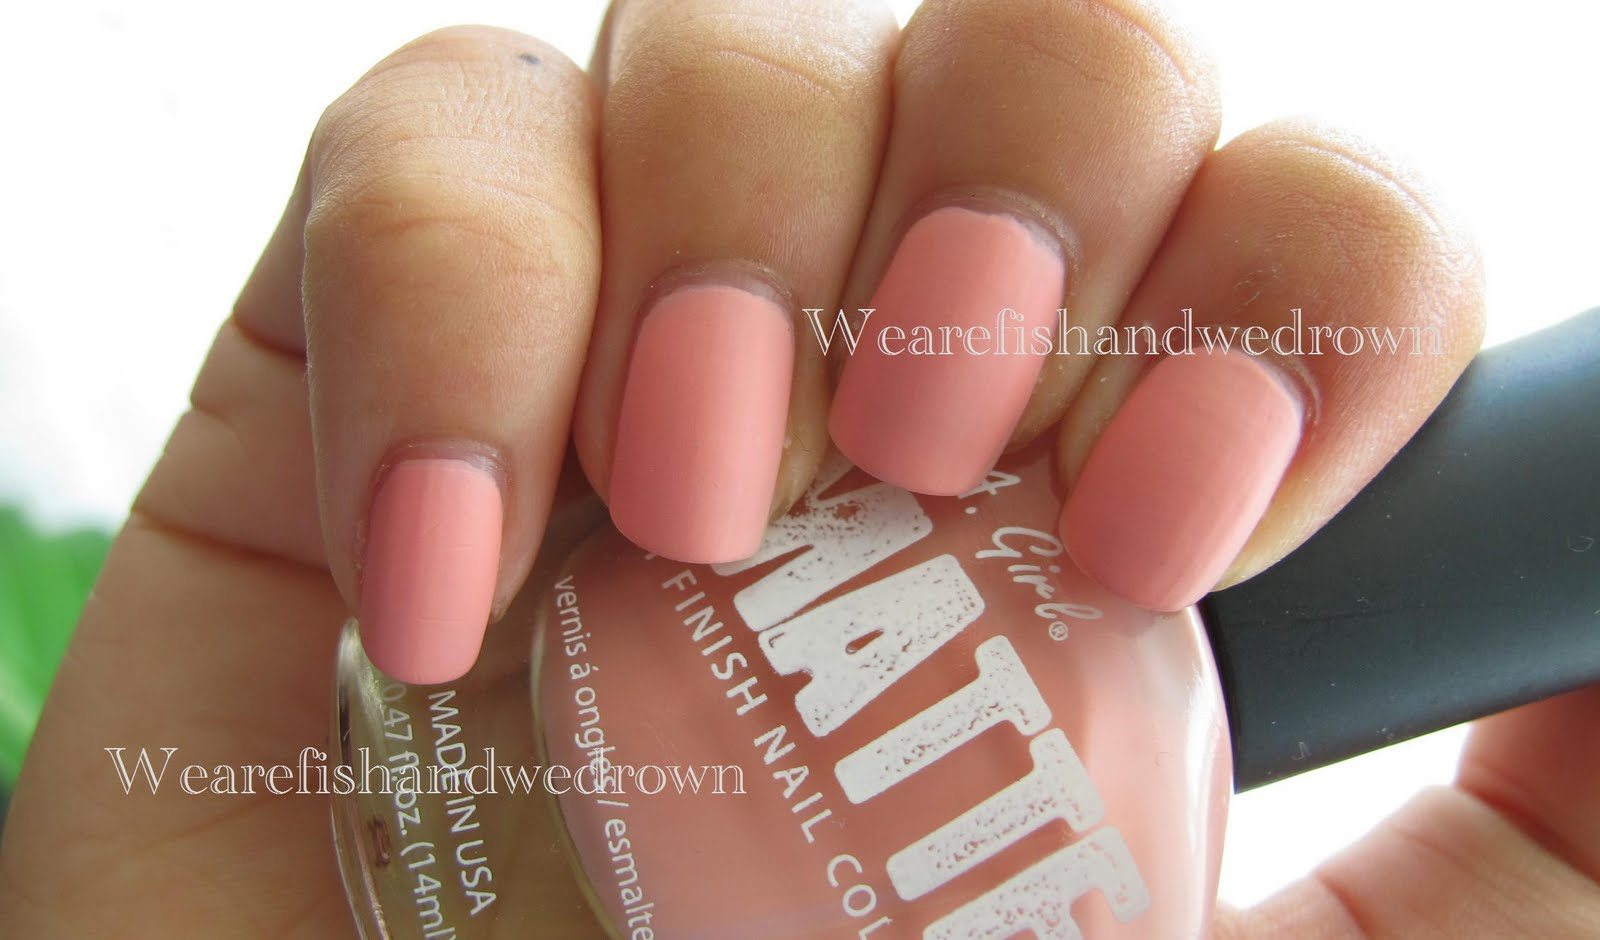 We are Fish: LA Girl Matte Baby Pink